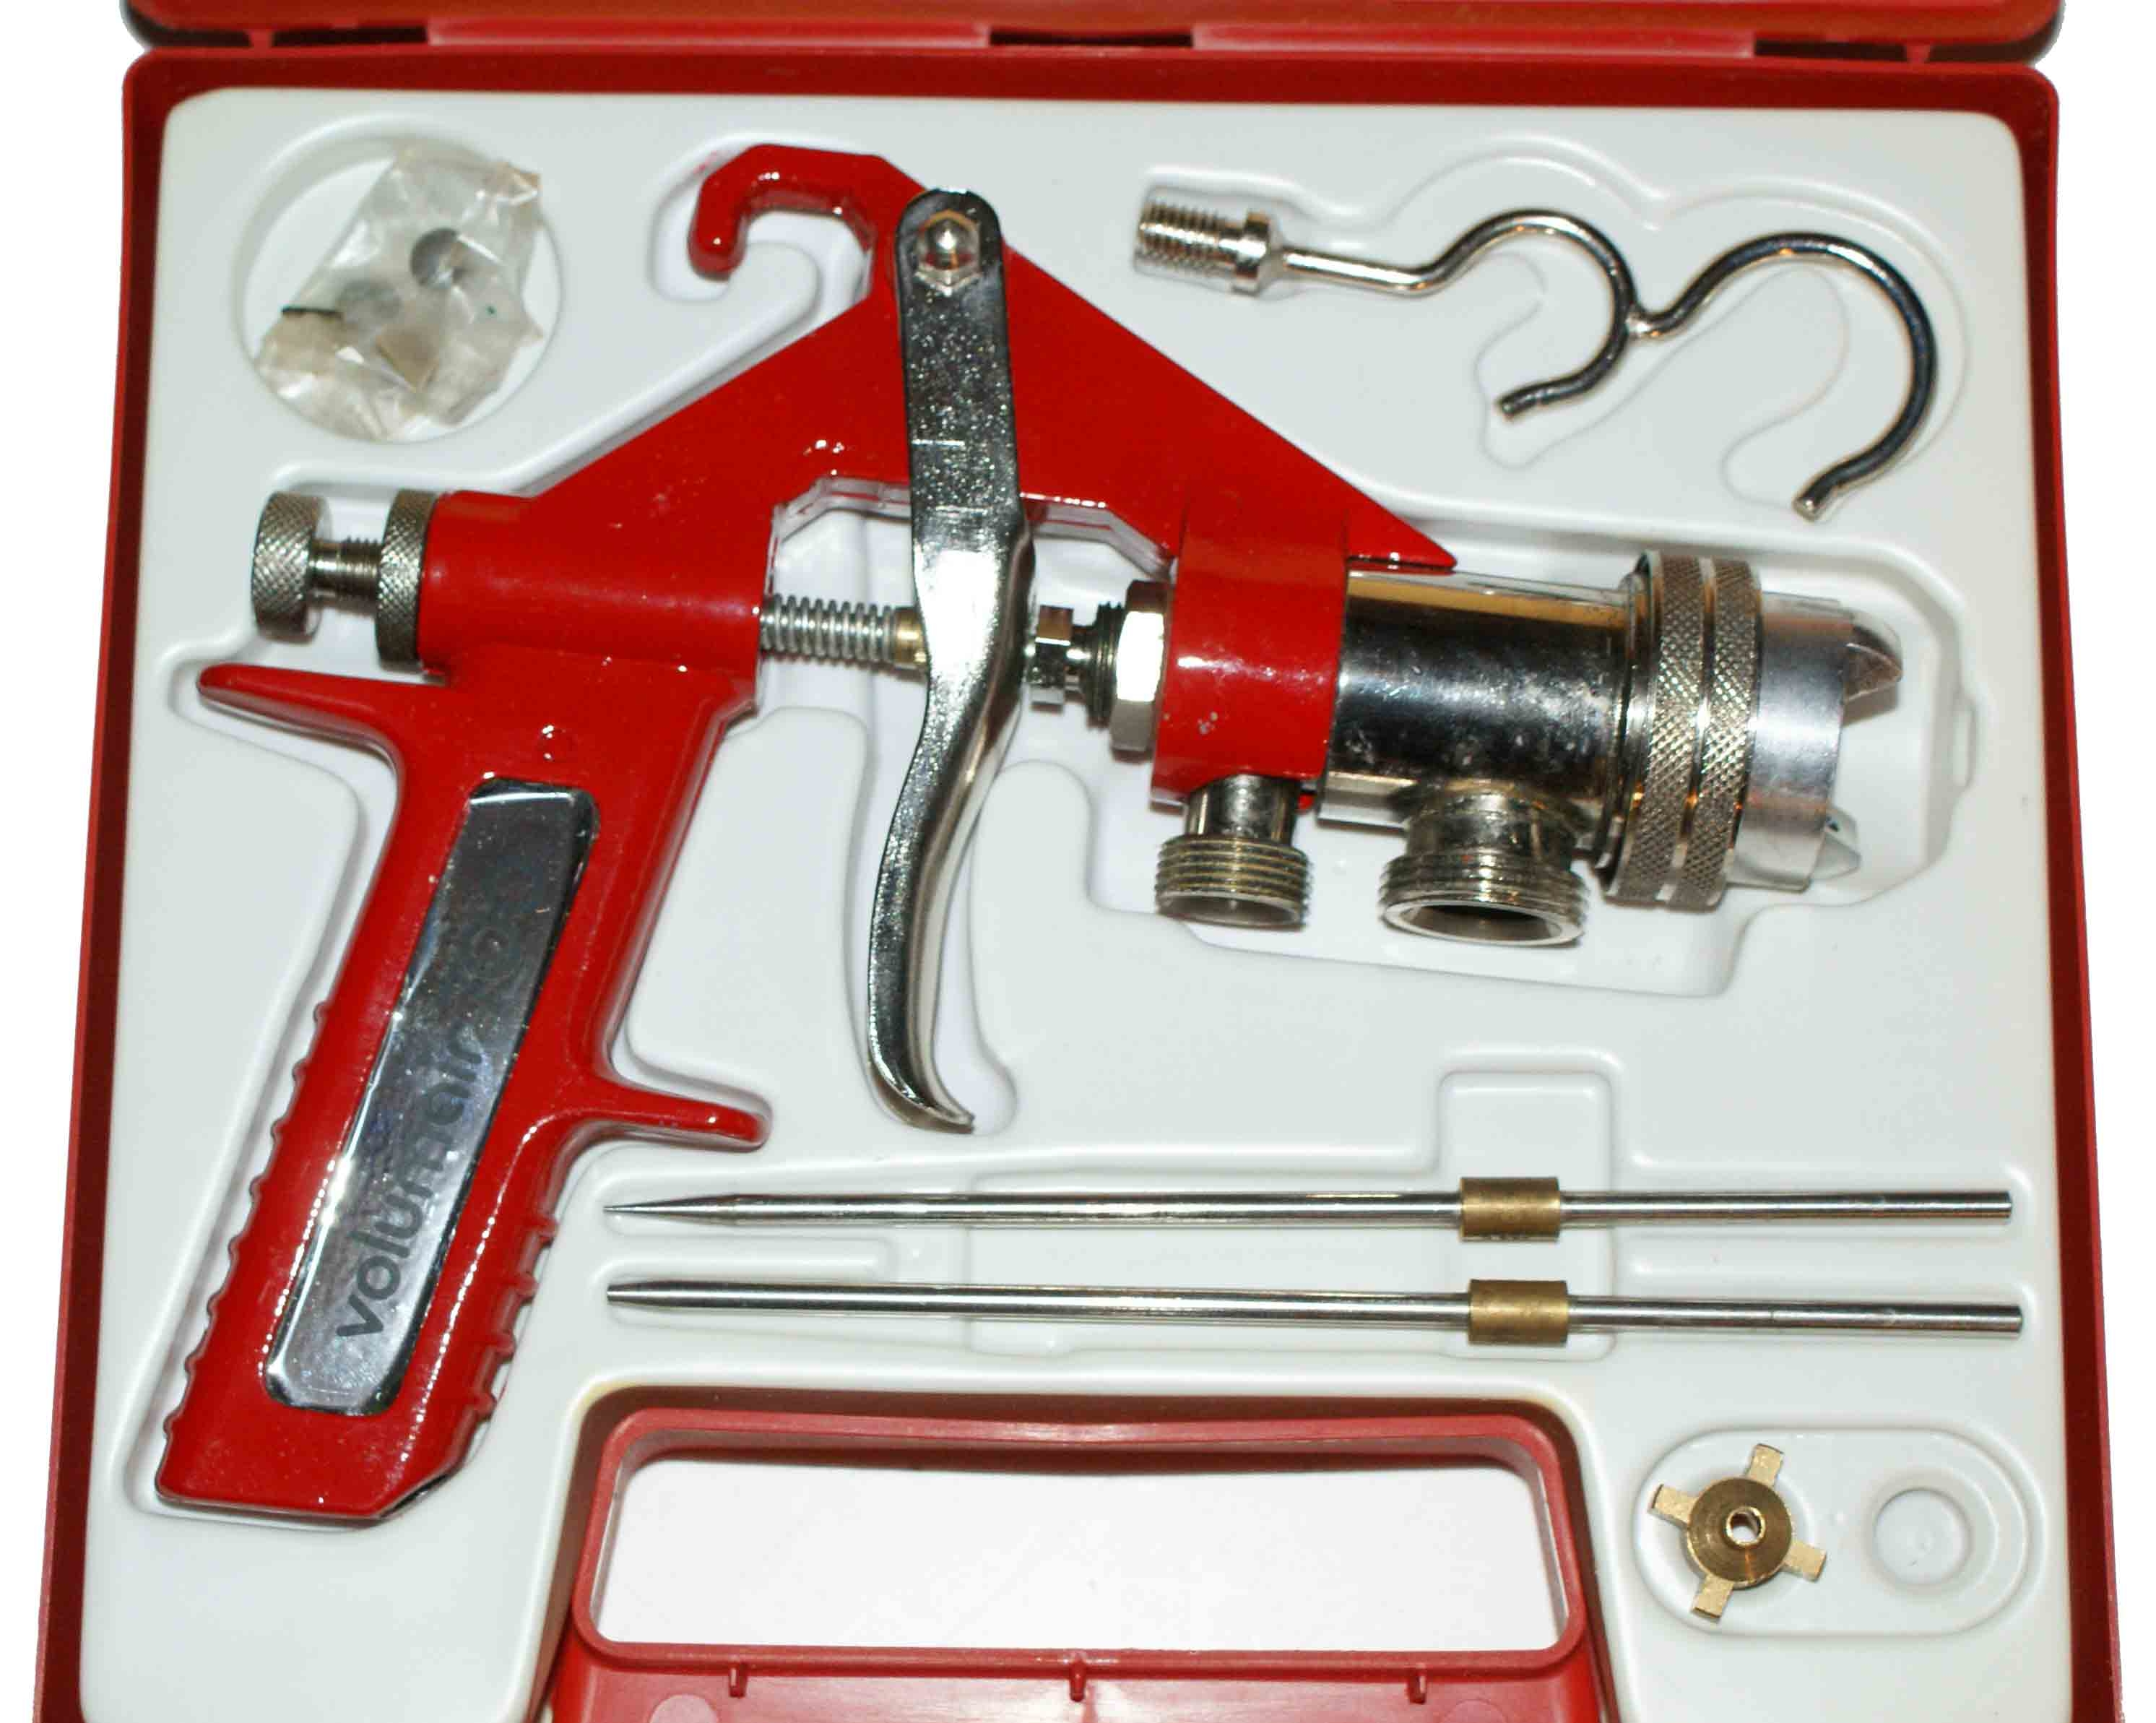 VolumAir 700 Turbine Spray Paint Gun